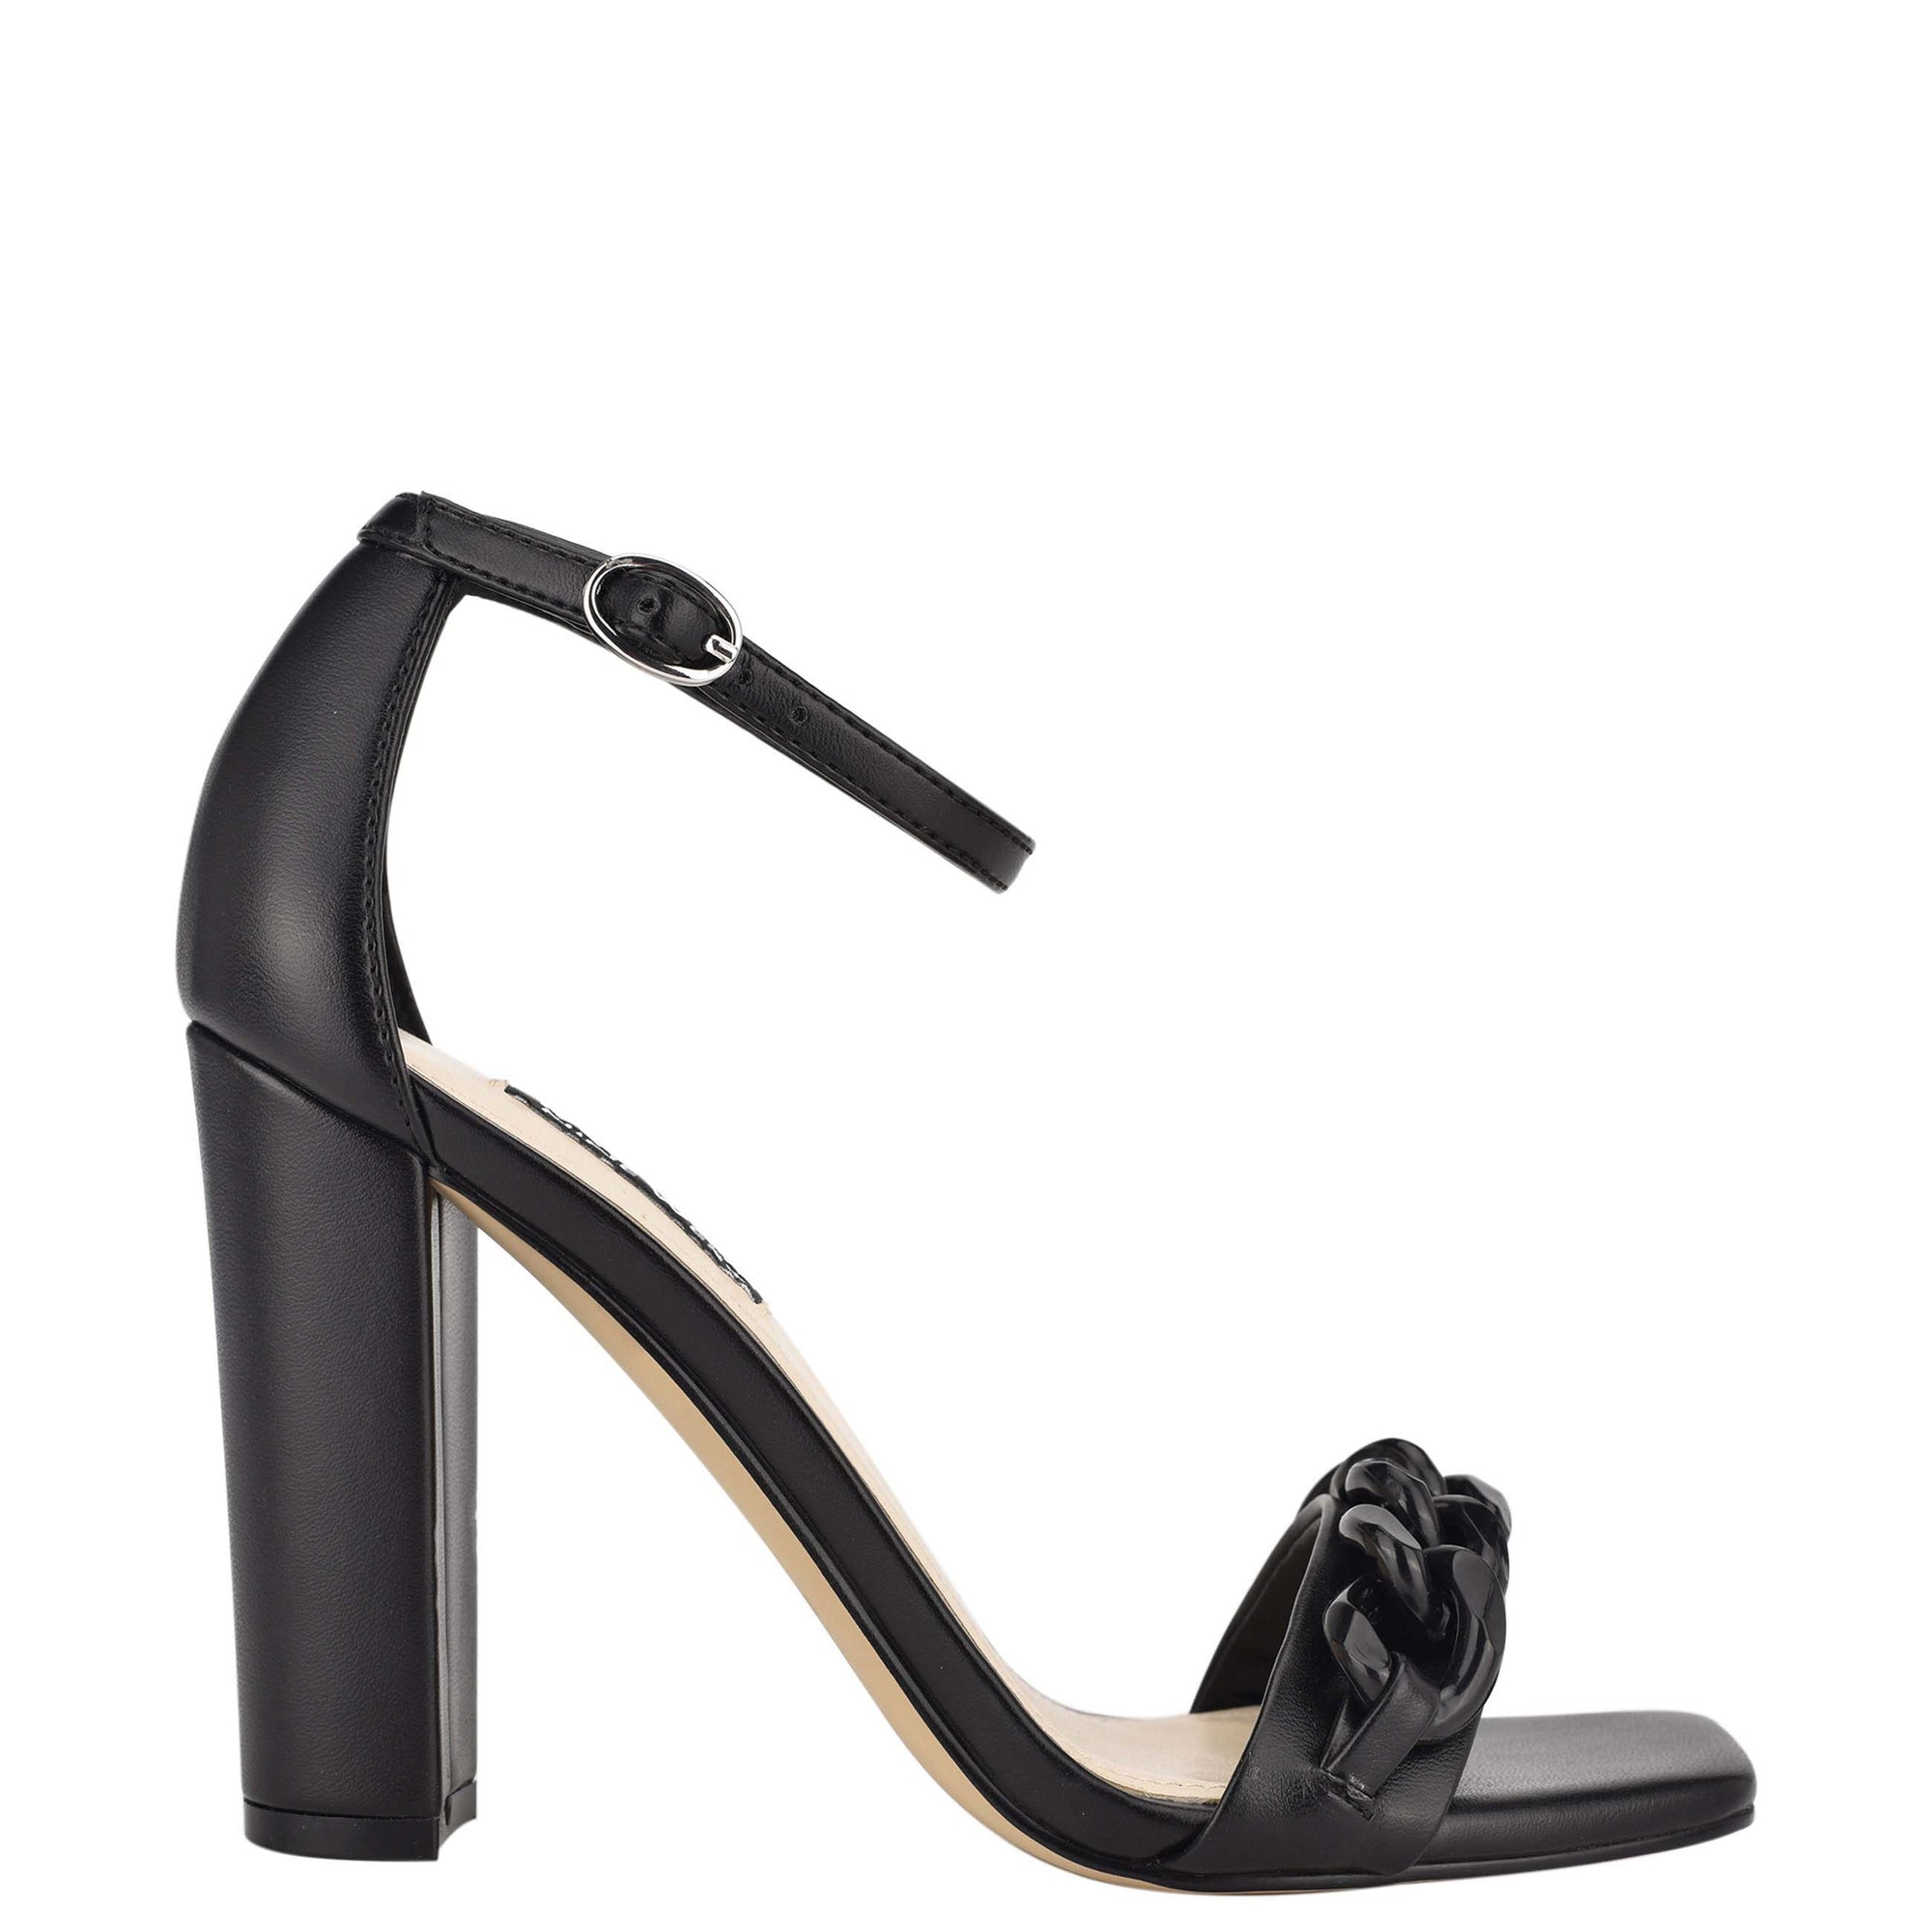 Mindful Ankle Strap Sandals